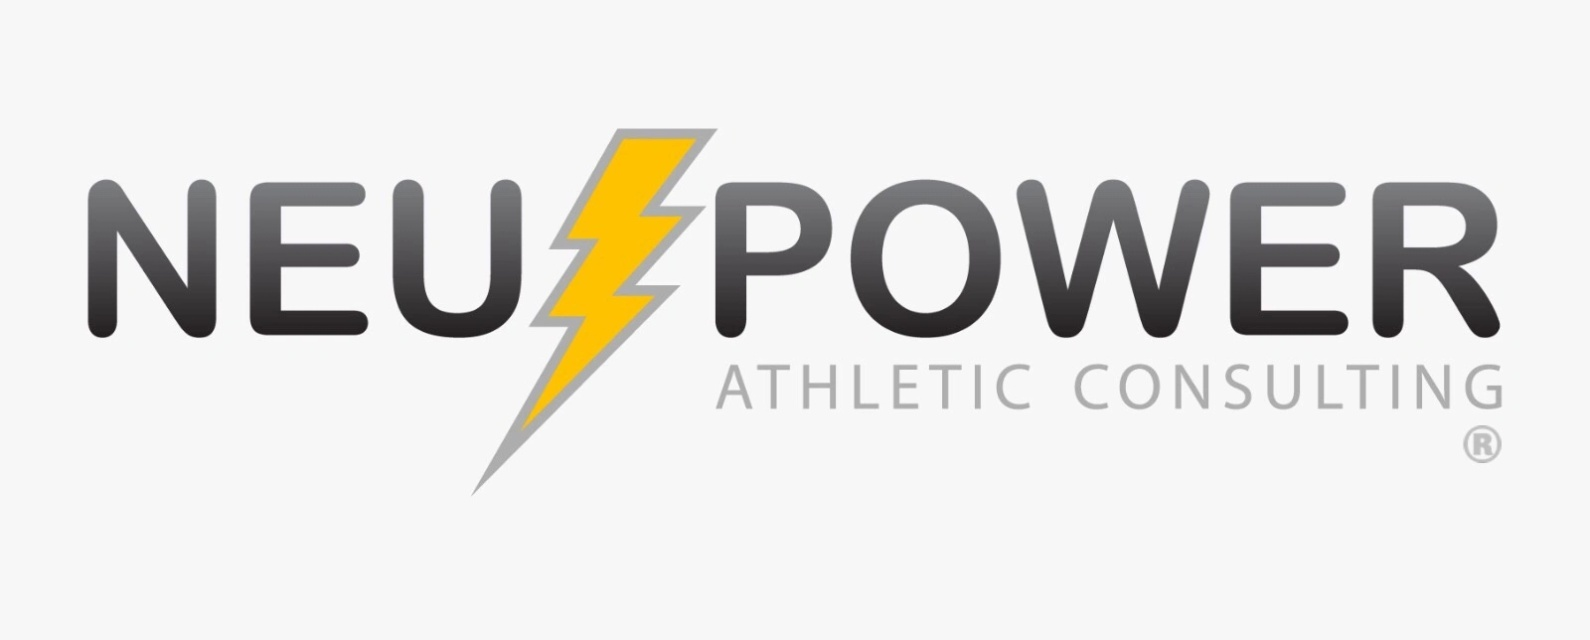 Neu-Power Athletic Consulting